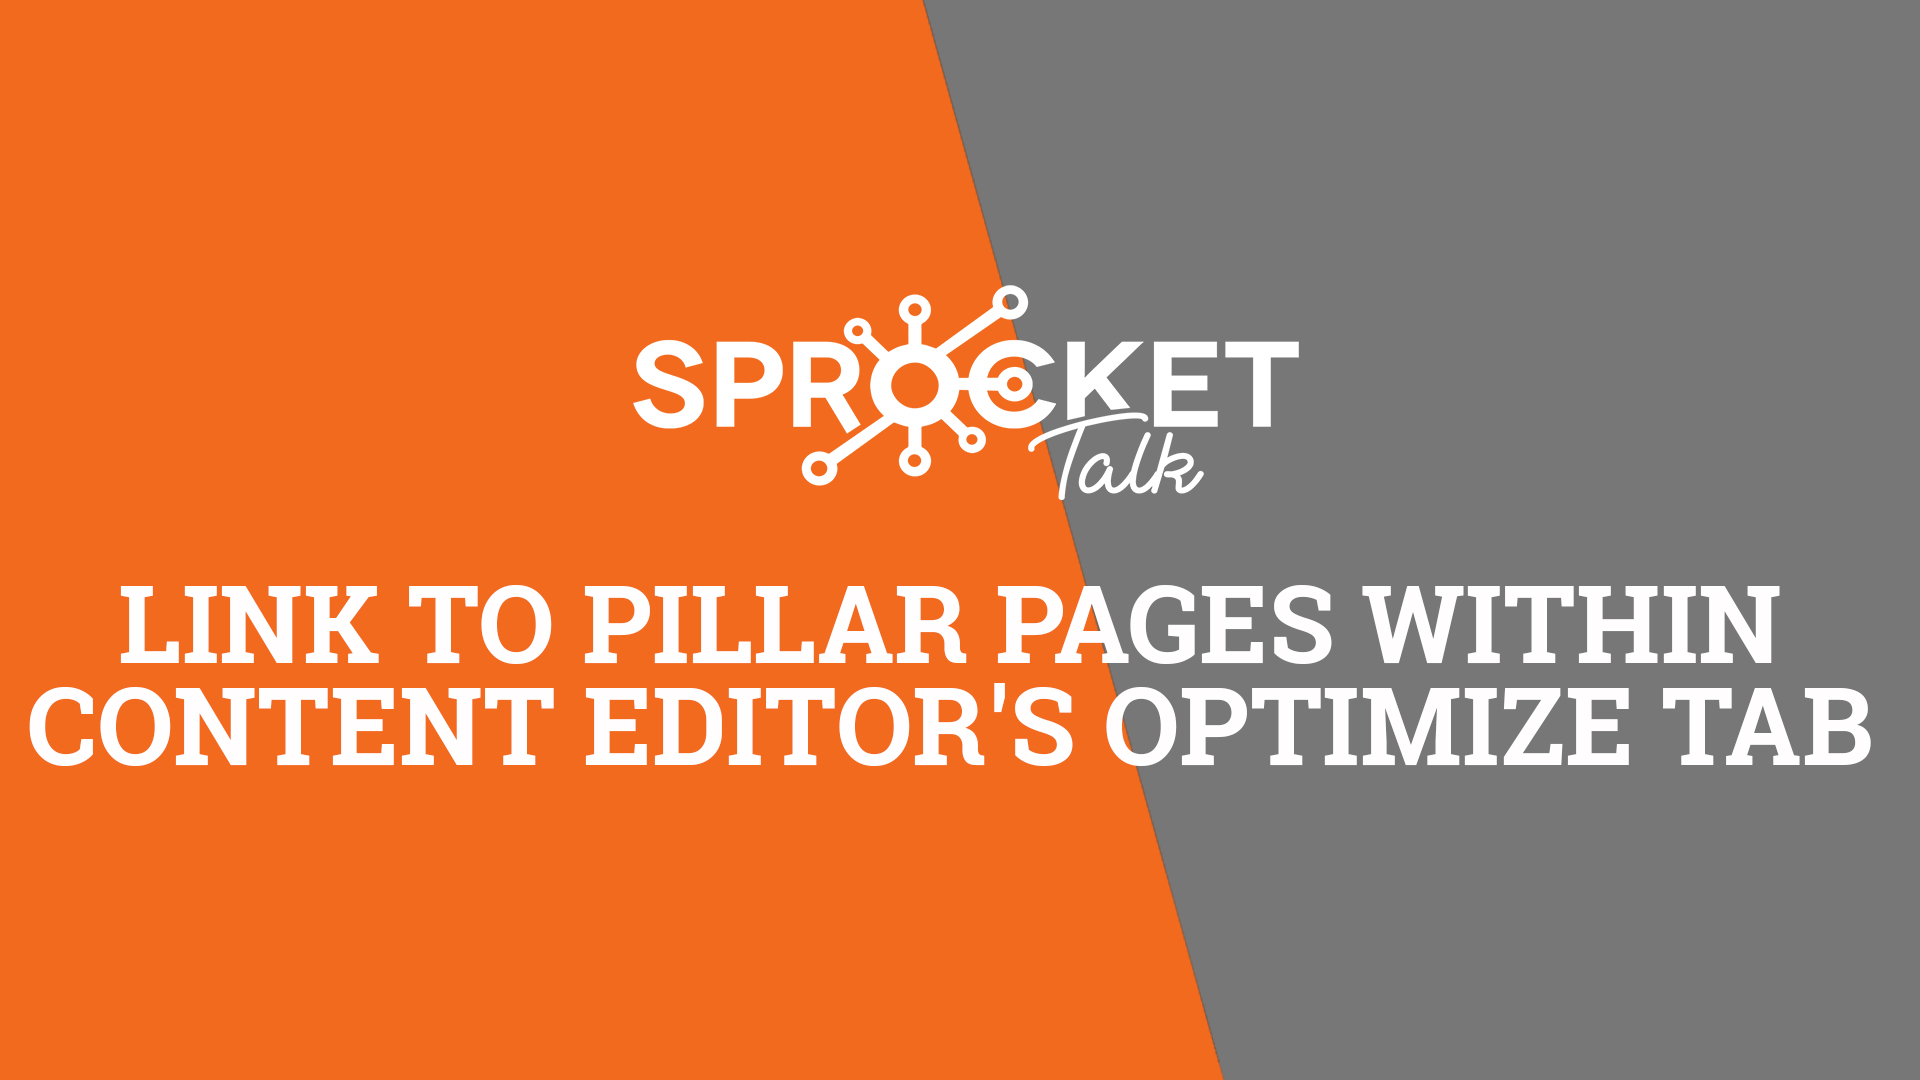 Link to Pillar Pages within Content Editor's Optimize Tab